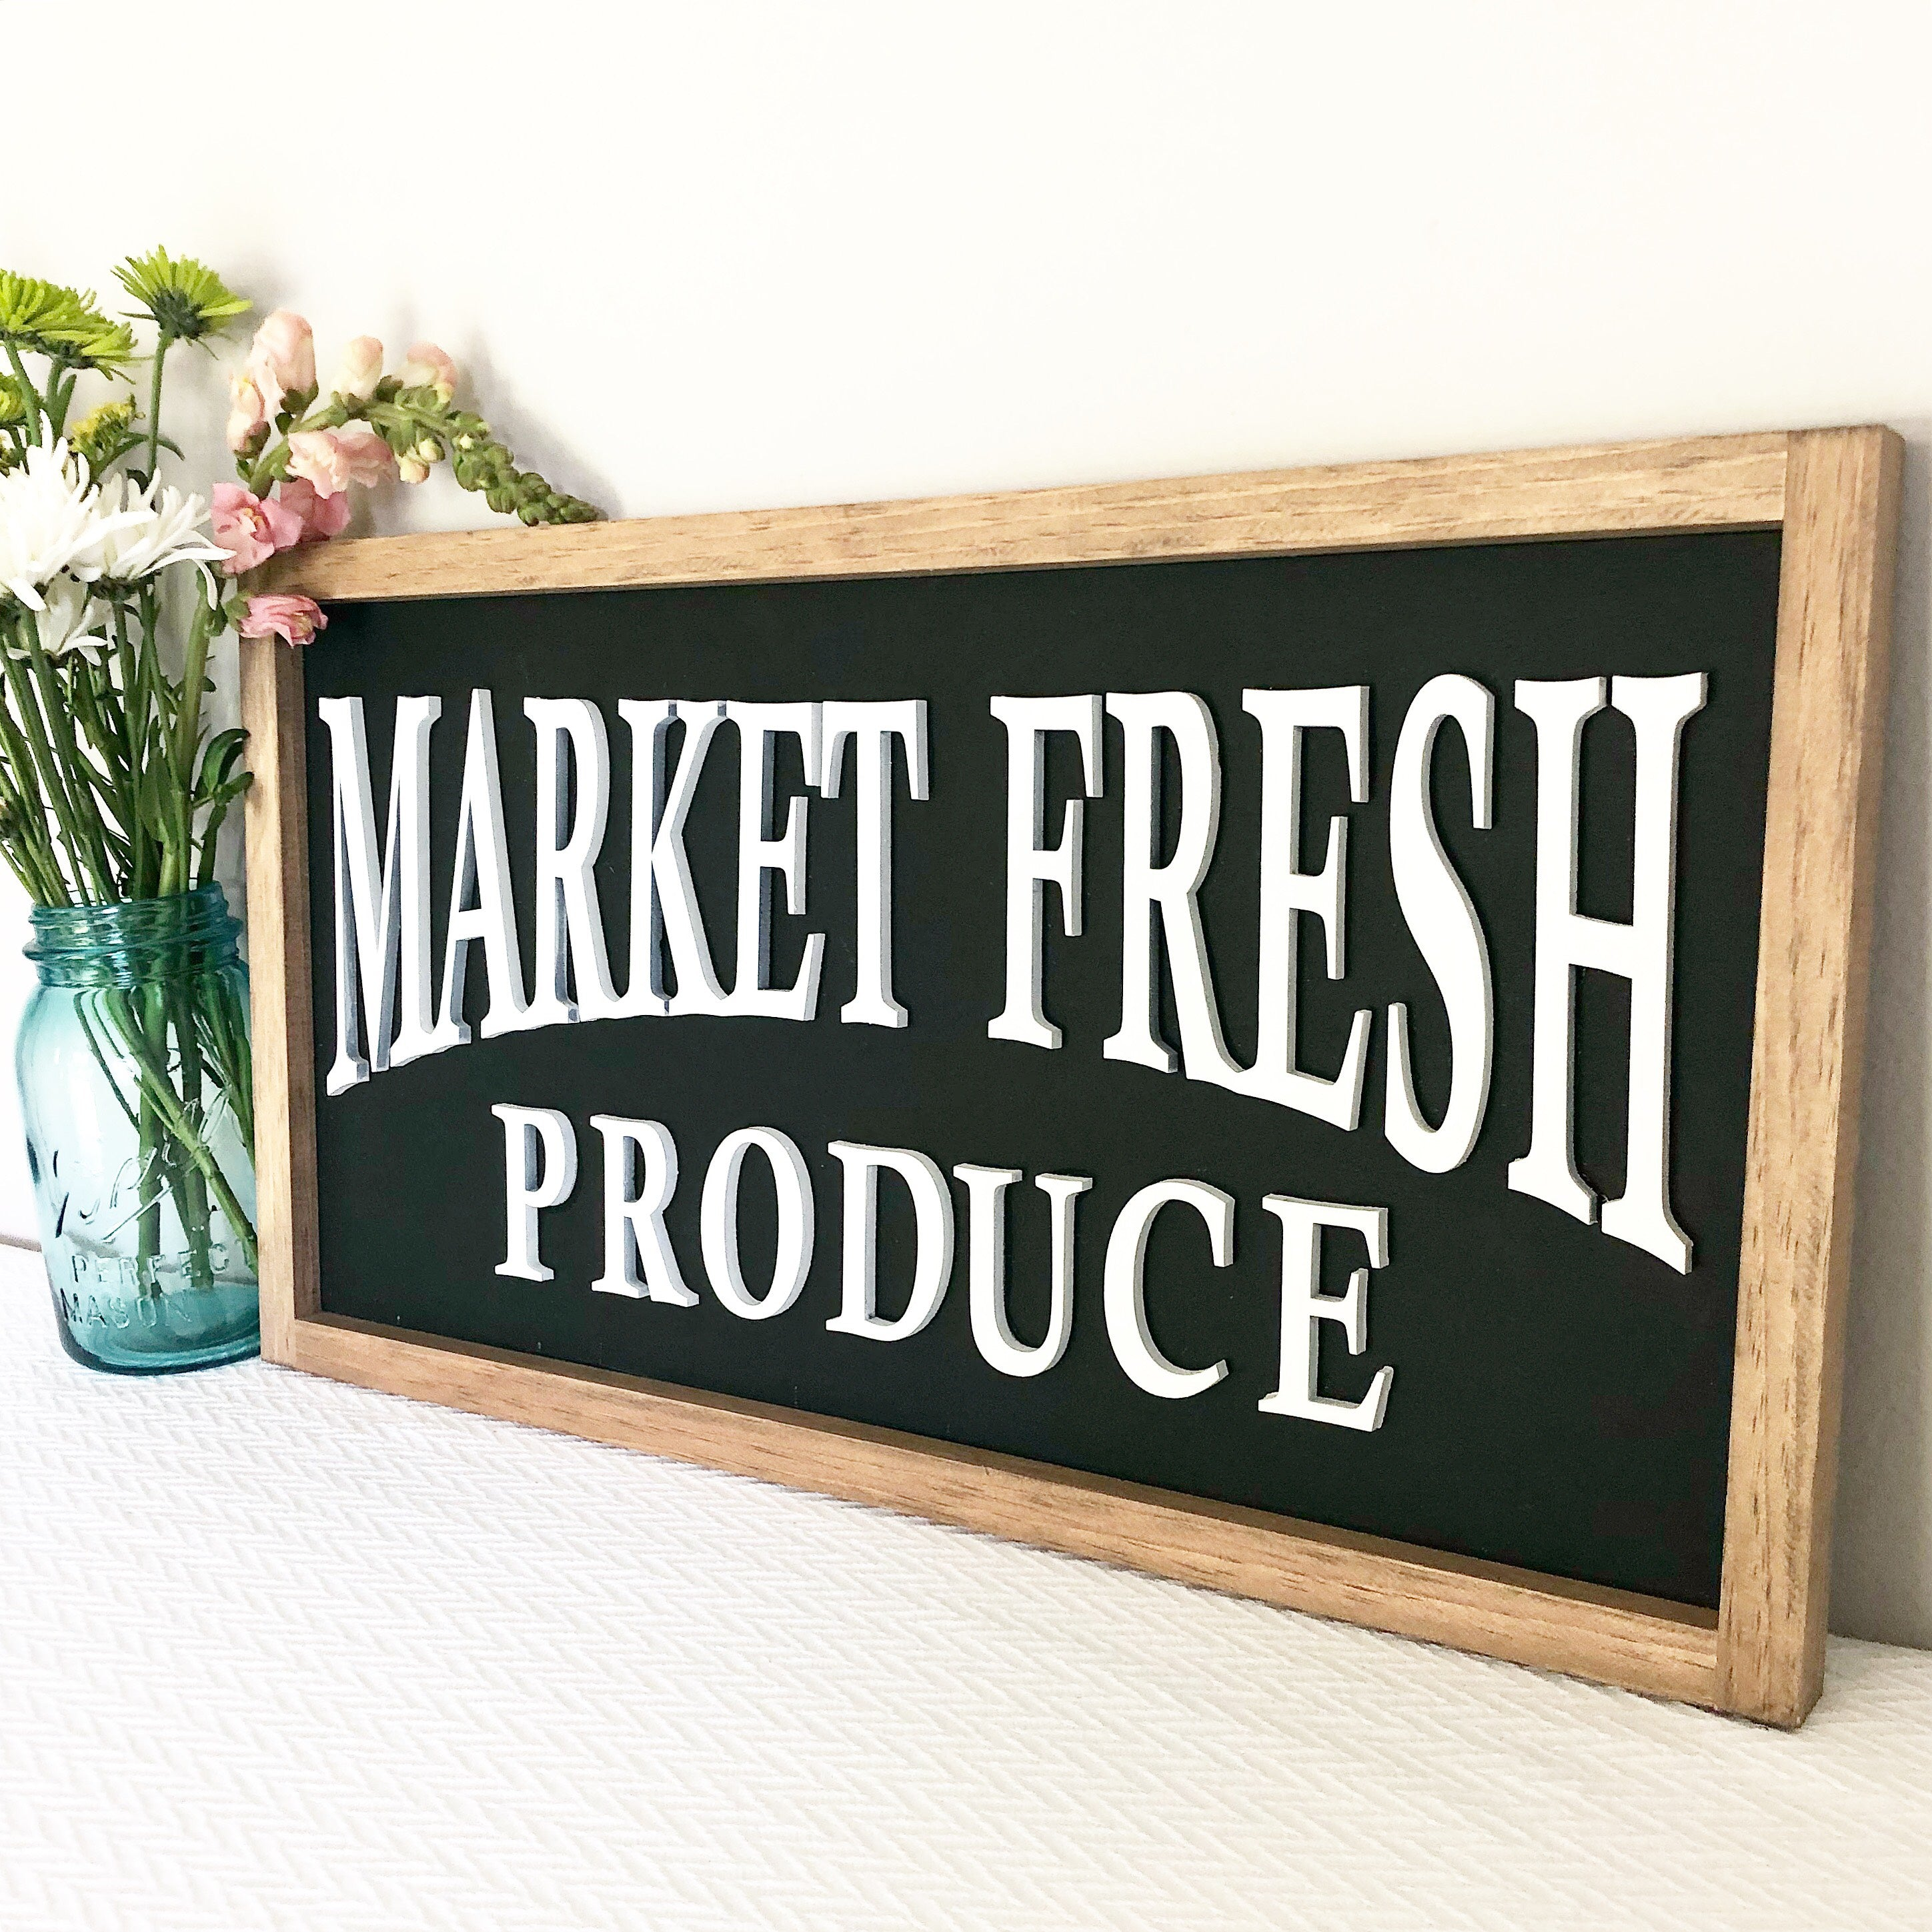 Market Fresh Produce - 3D